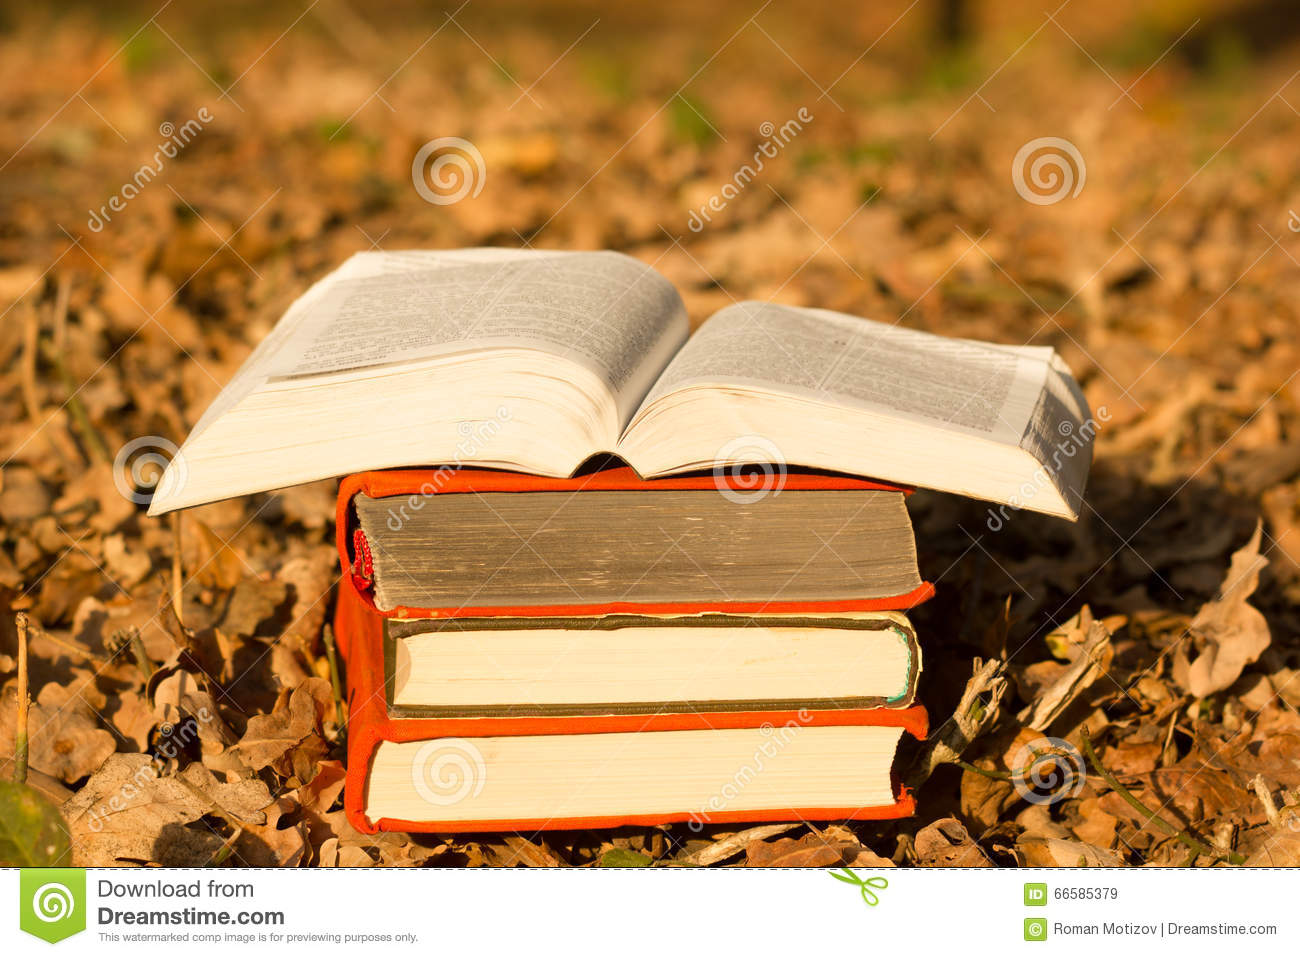 Can I photocopy a textbook if it is for educational purposes?